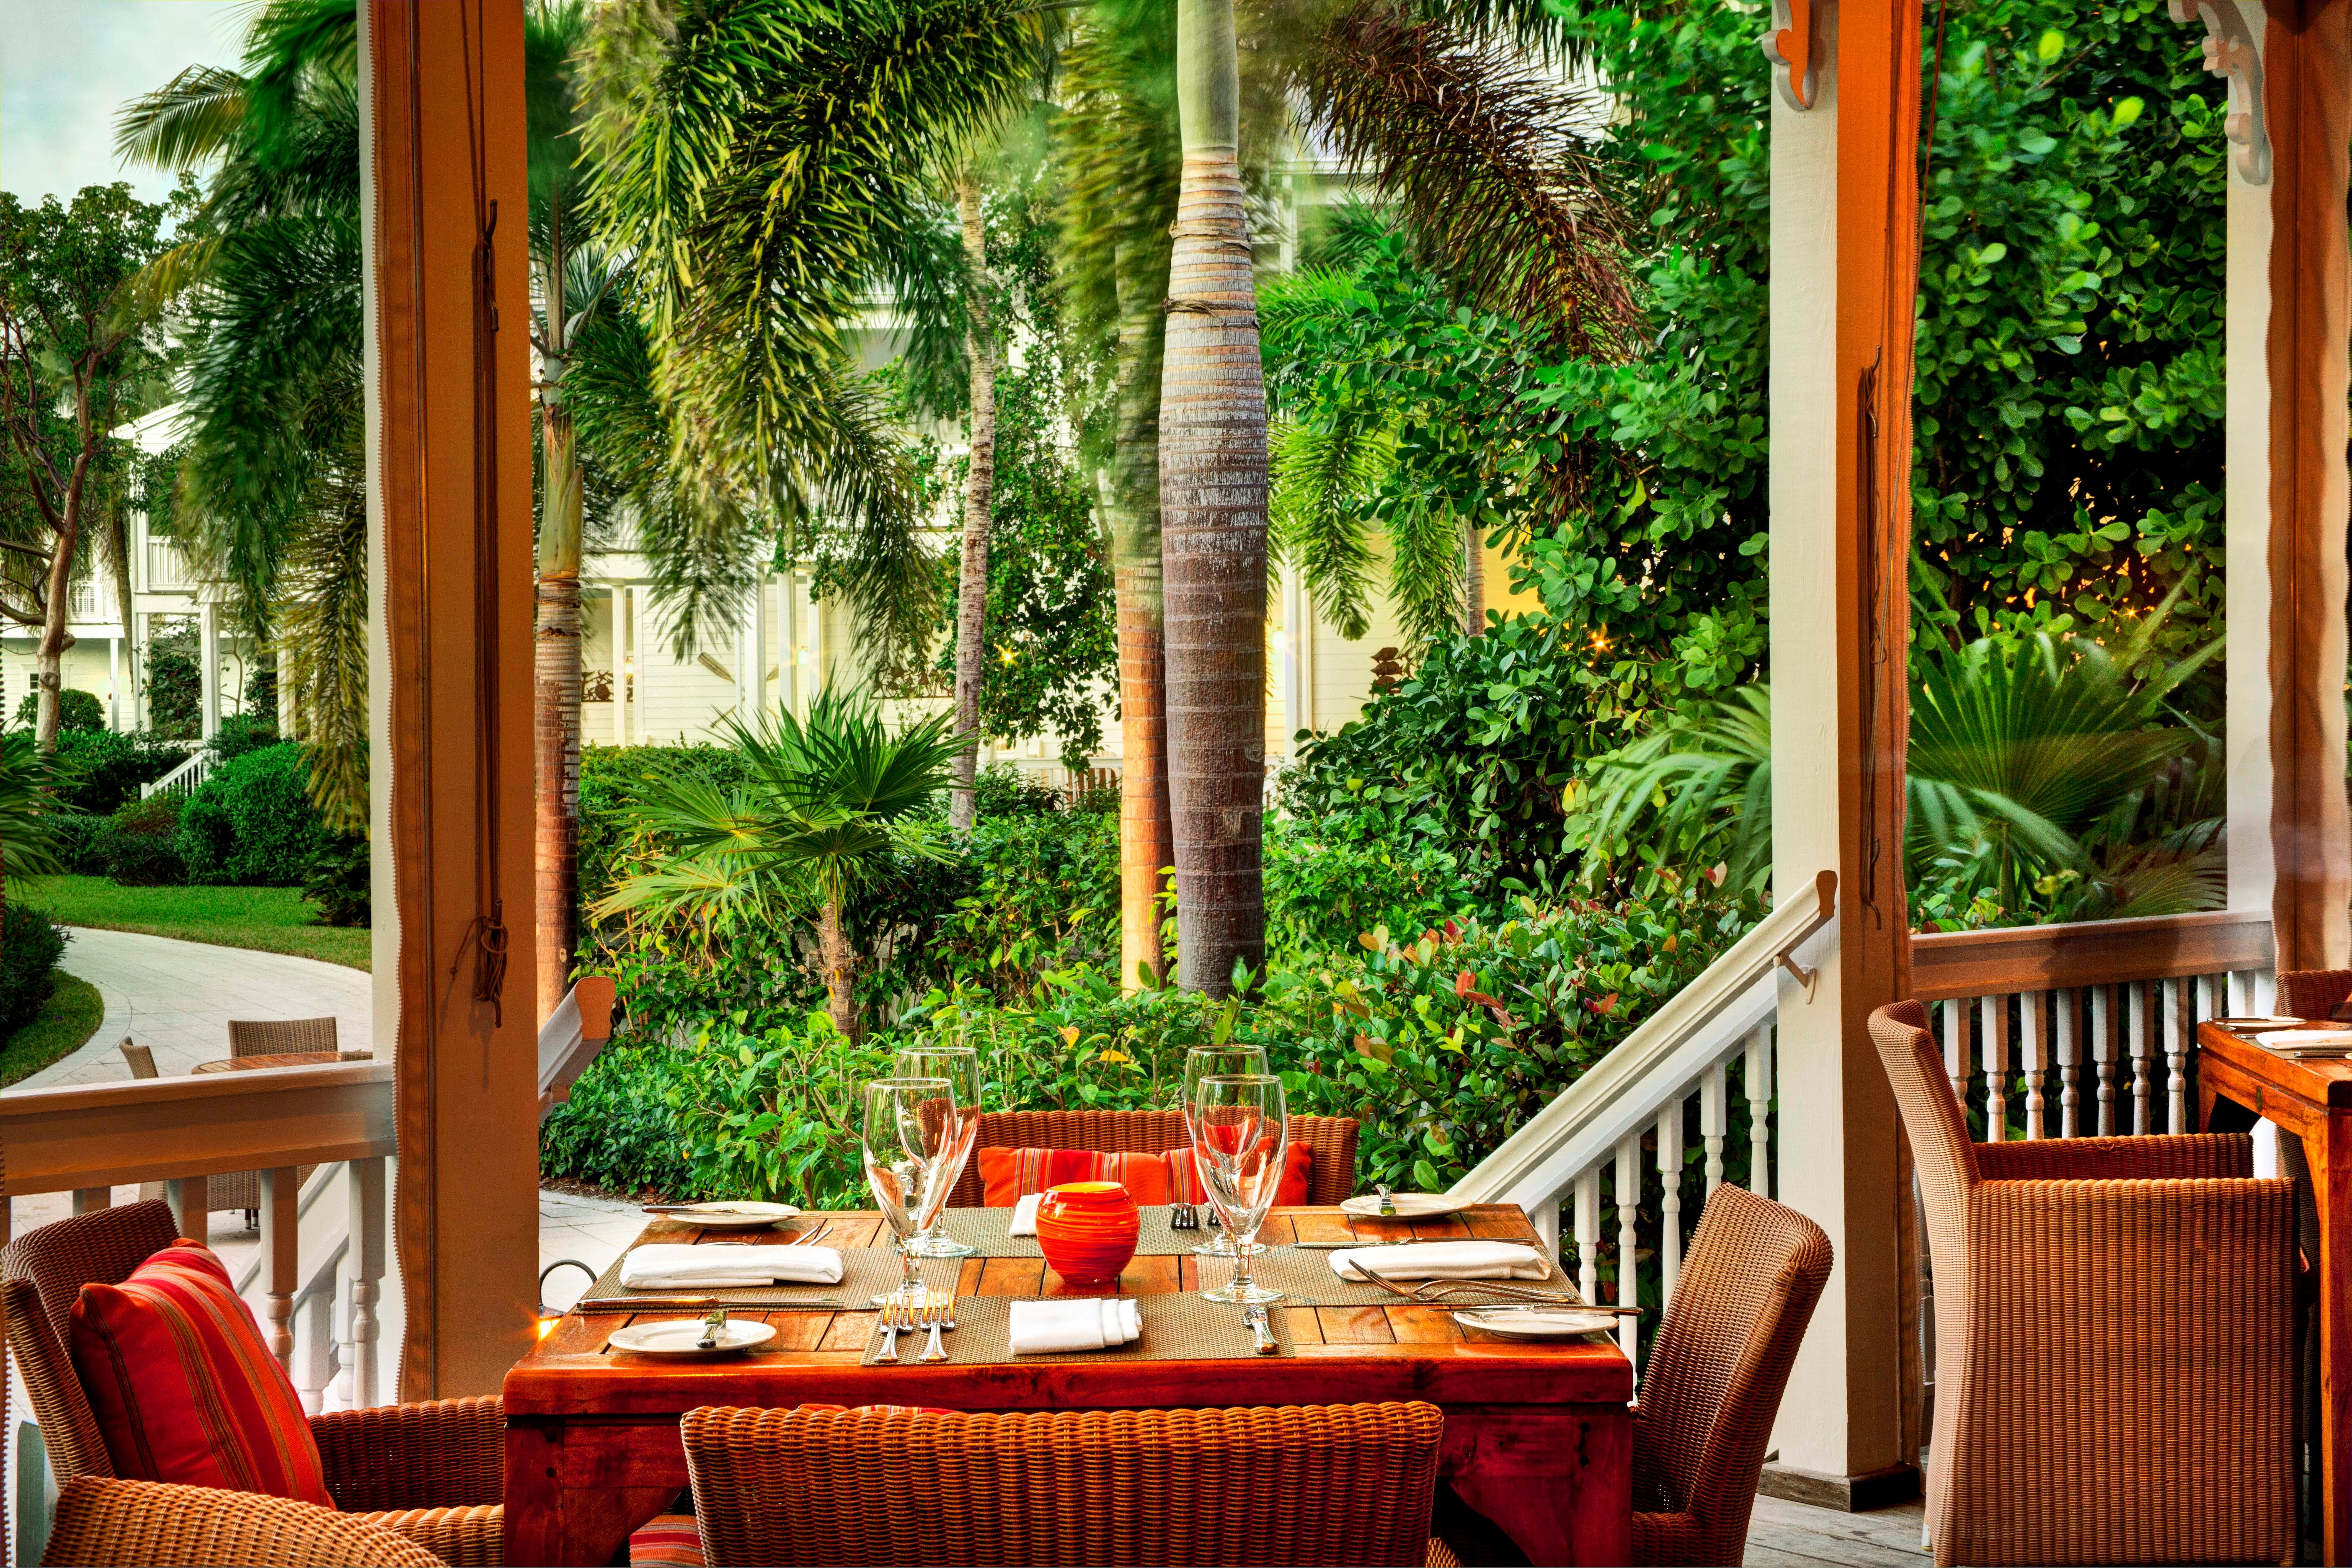 Dining at Butterfly Cafe, the outdoor restaurant at Tranquility Bay Resort in the Florida Keys.